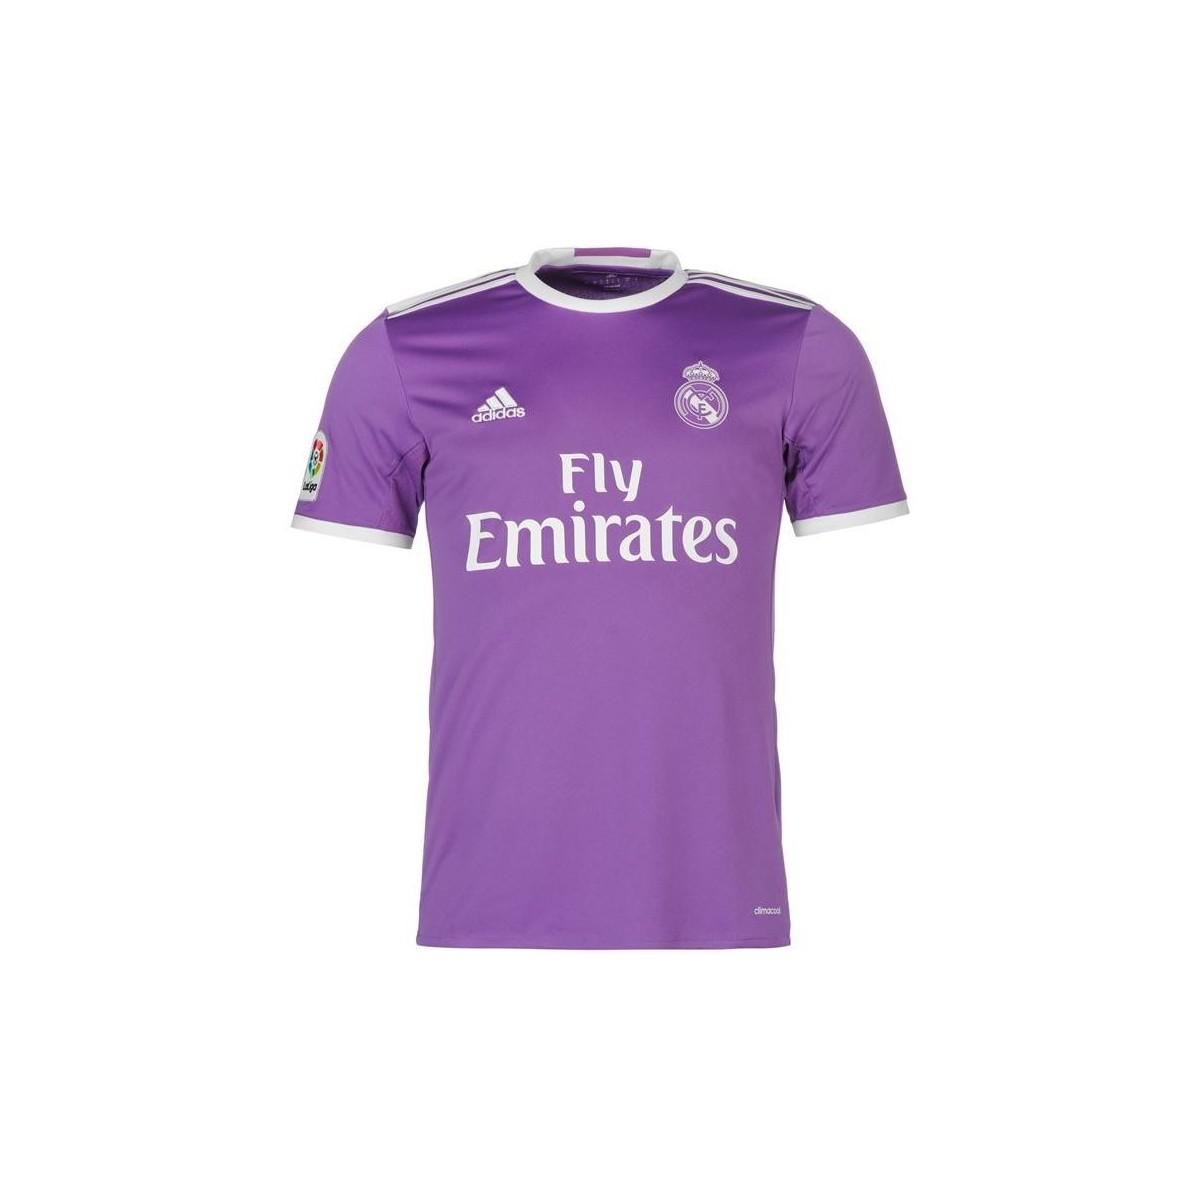 adidas 2016-17 Real Madrid Away Shirt (bale 11) Men s T Shirt In ... 0921d49f3